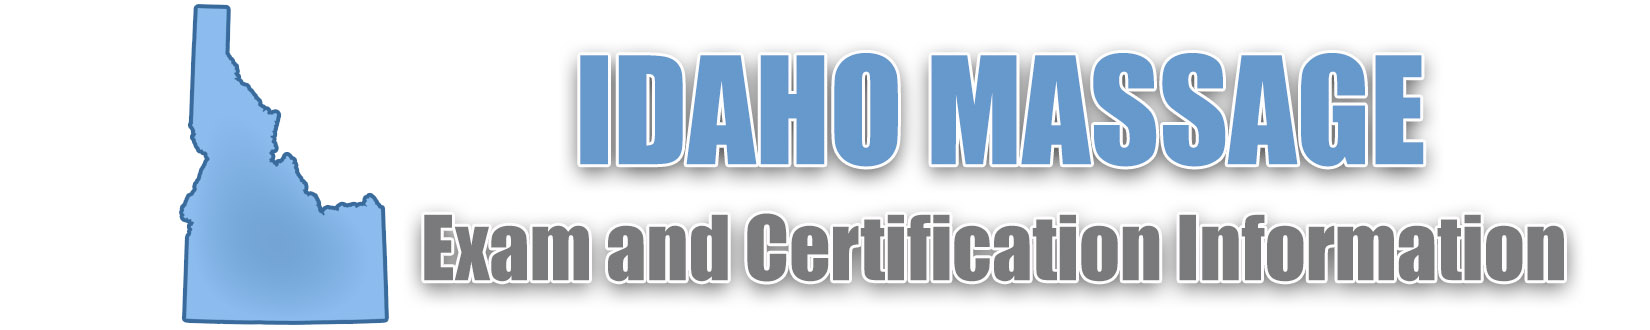 Idaho Massage Therapy Board Licensing And Training Information